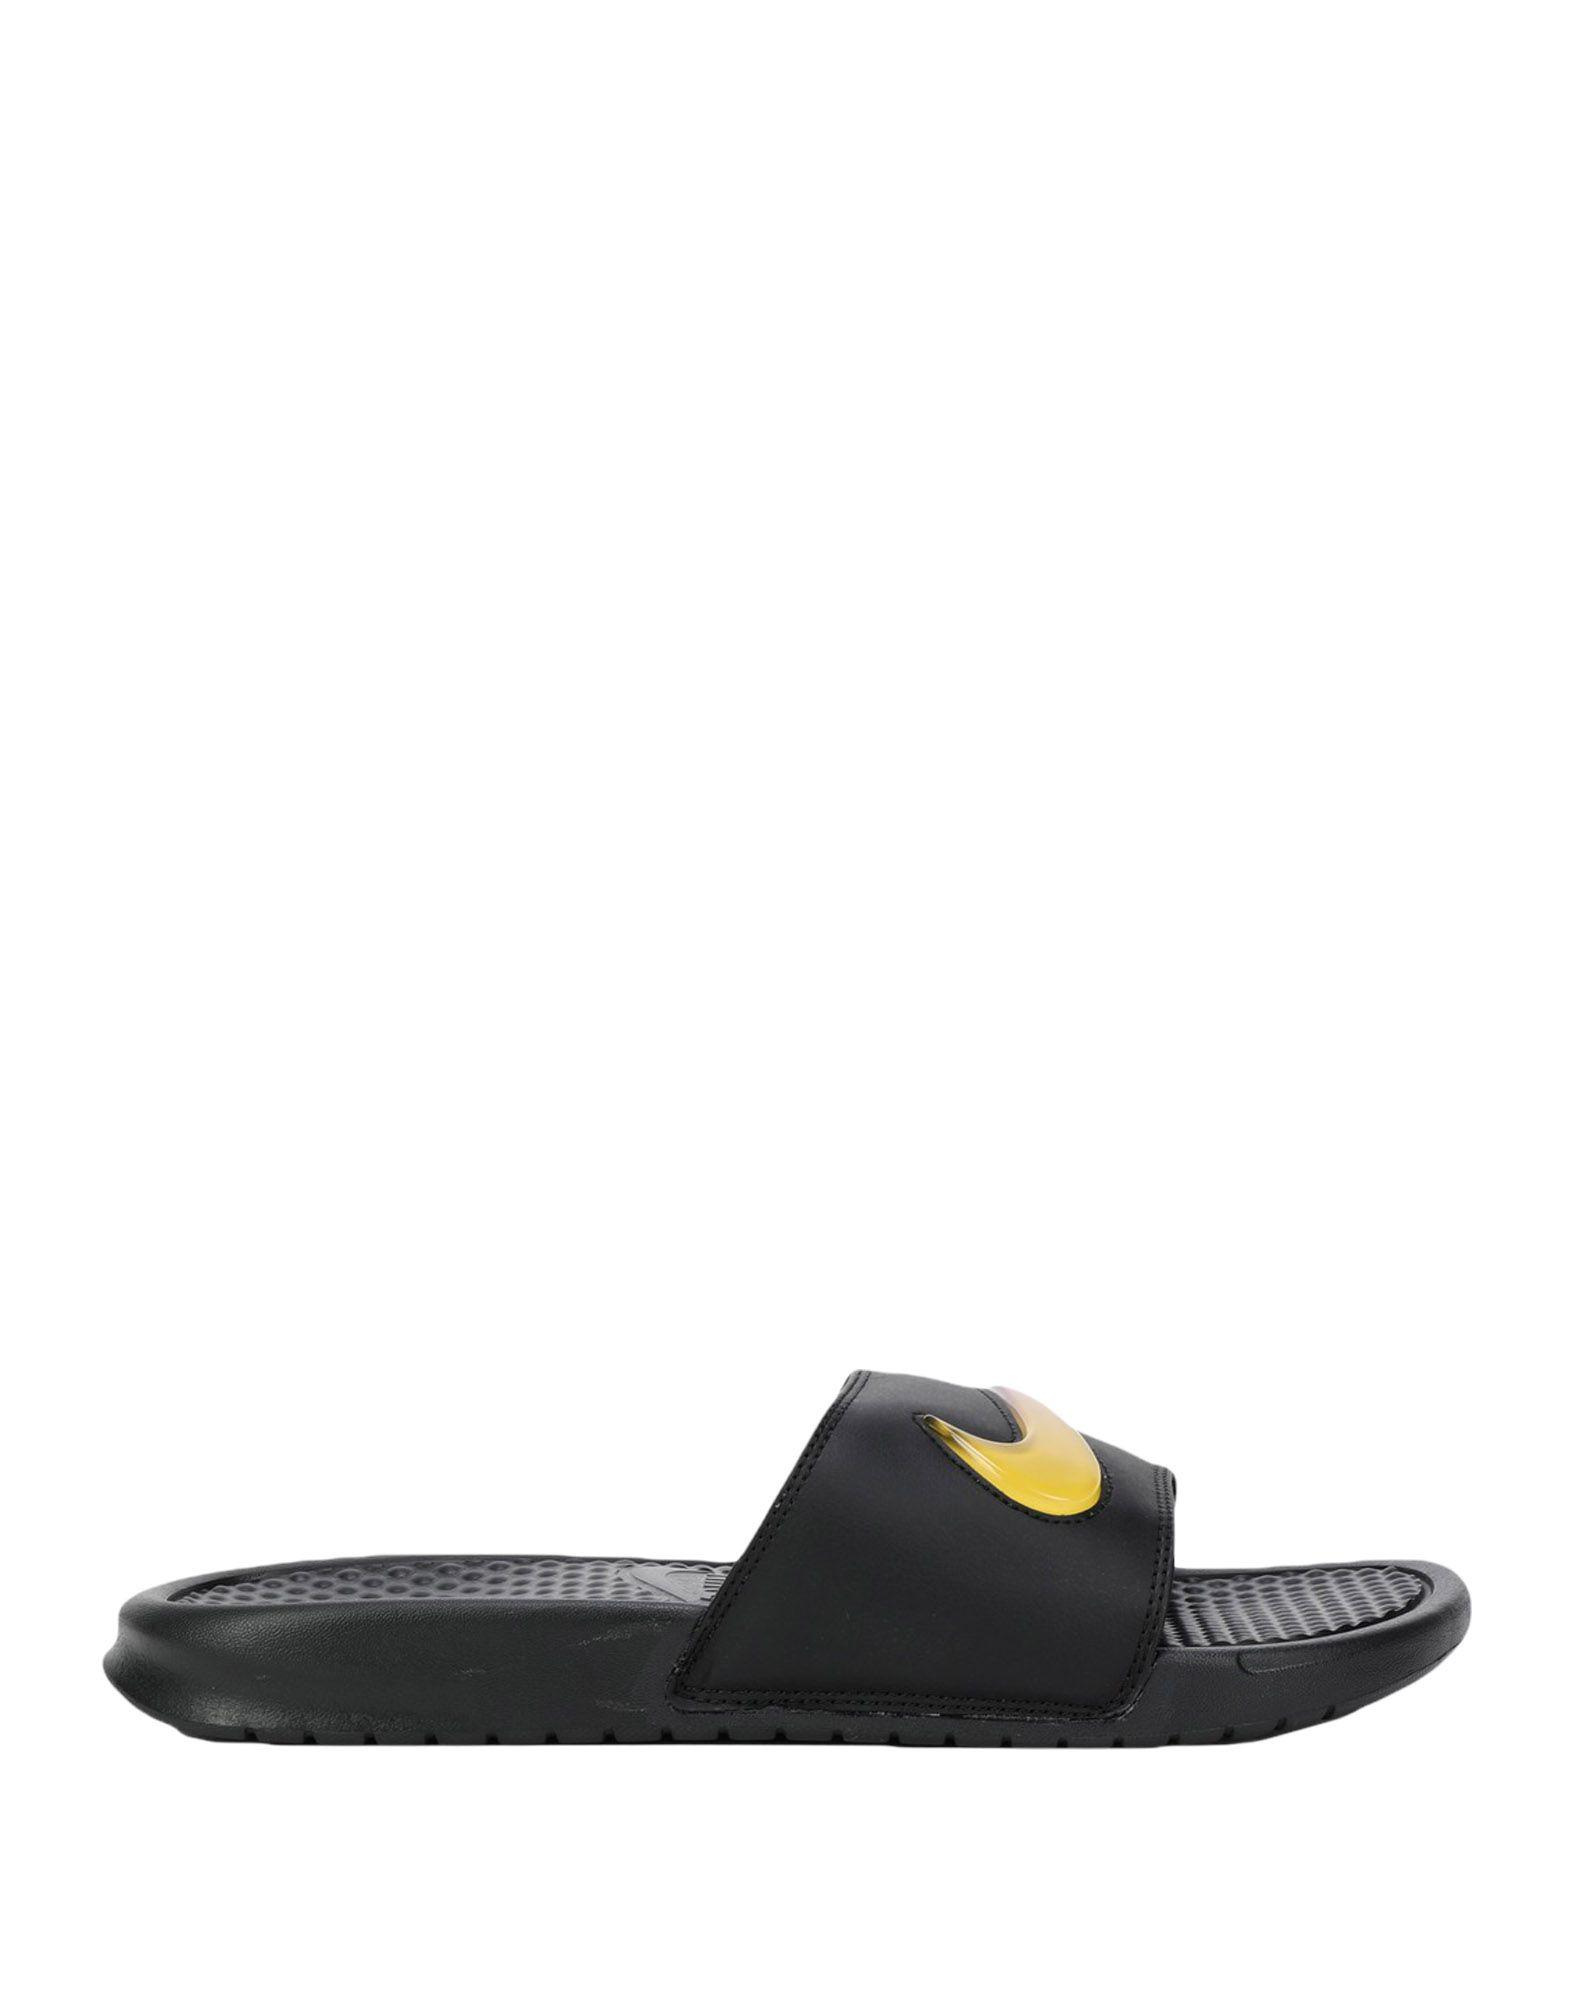 91317366e9a7 Nike Sandals in Black for Men - Lyst